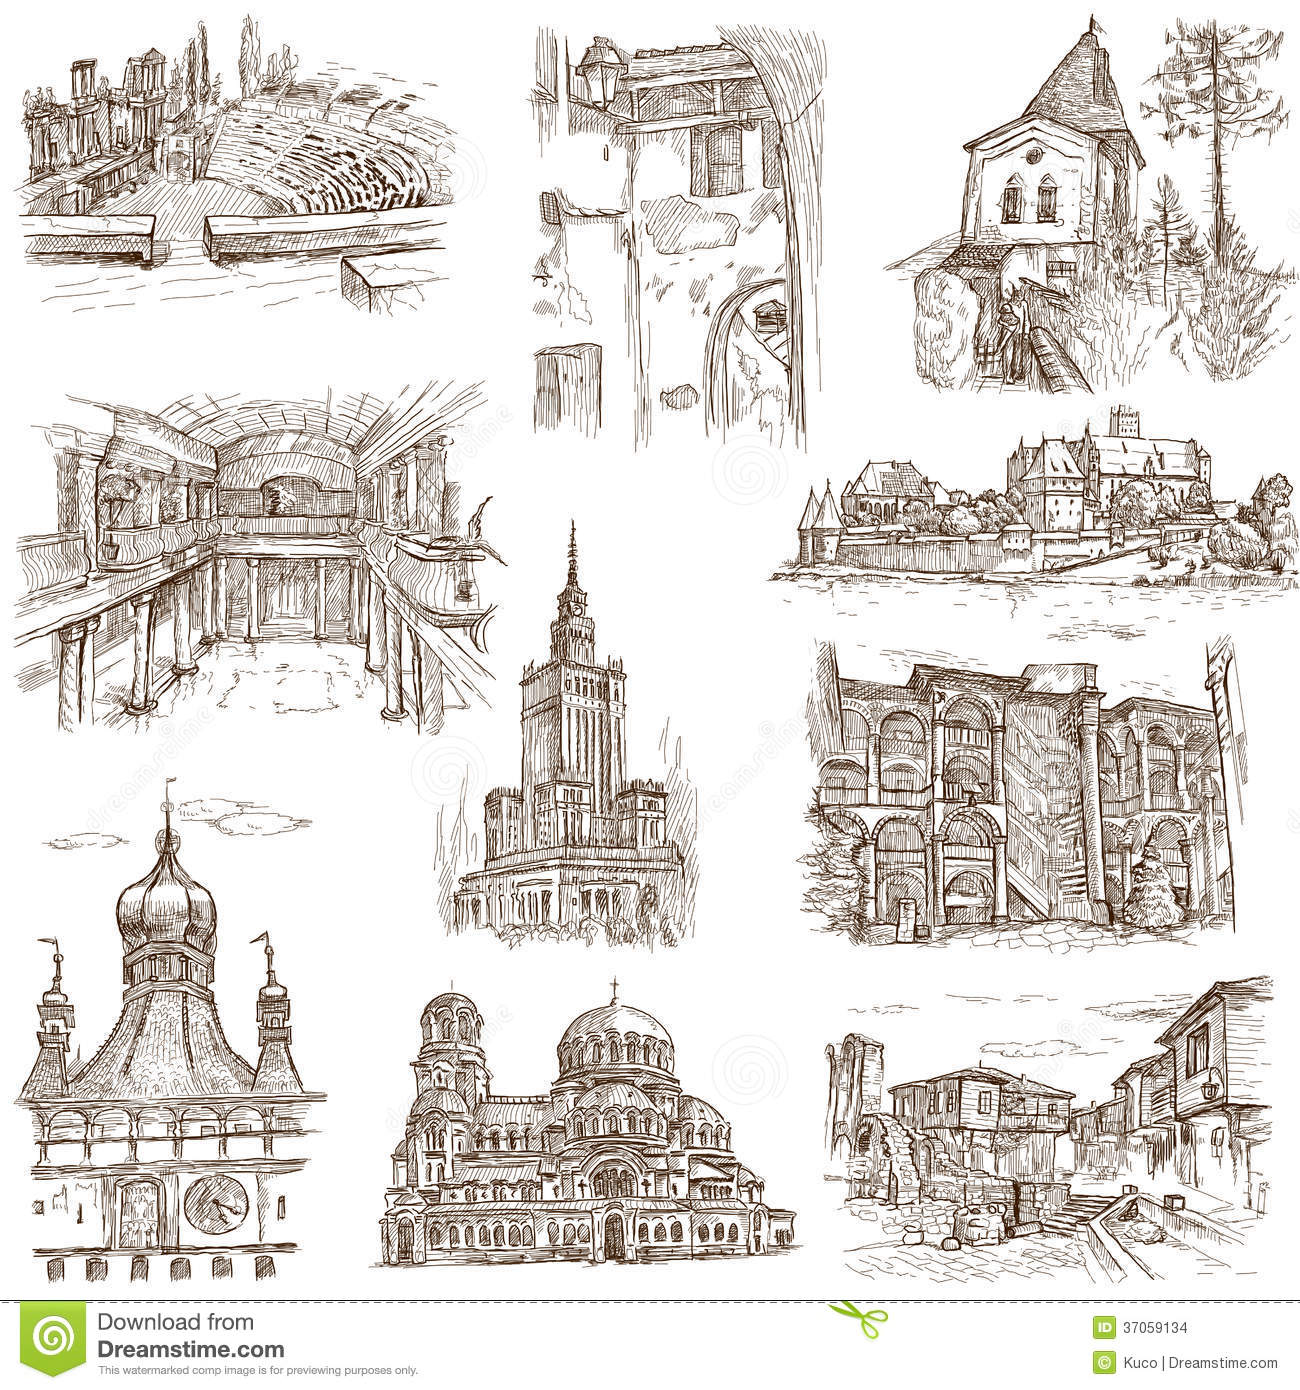 architectural drawings of famous buildings. fine drawings buildings and architecture with architectural drawings of famous